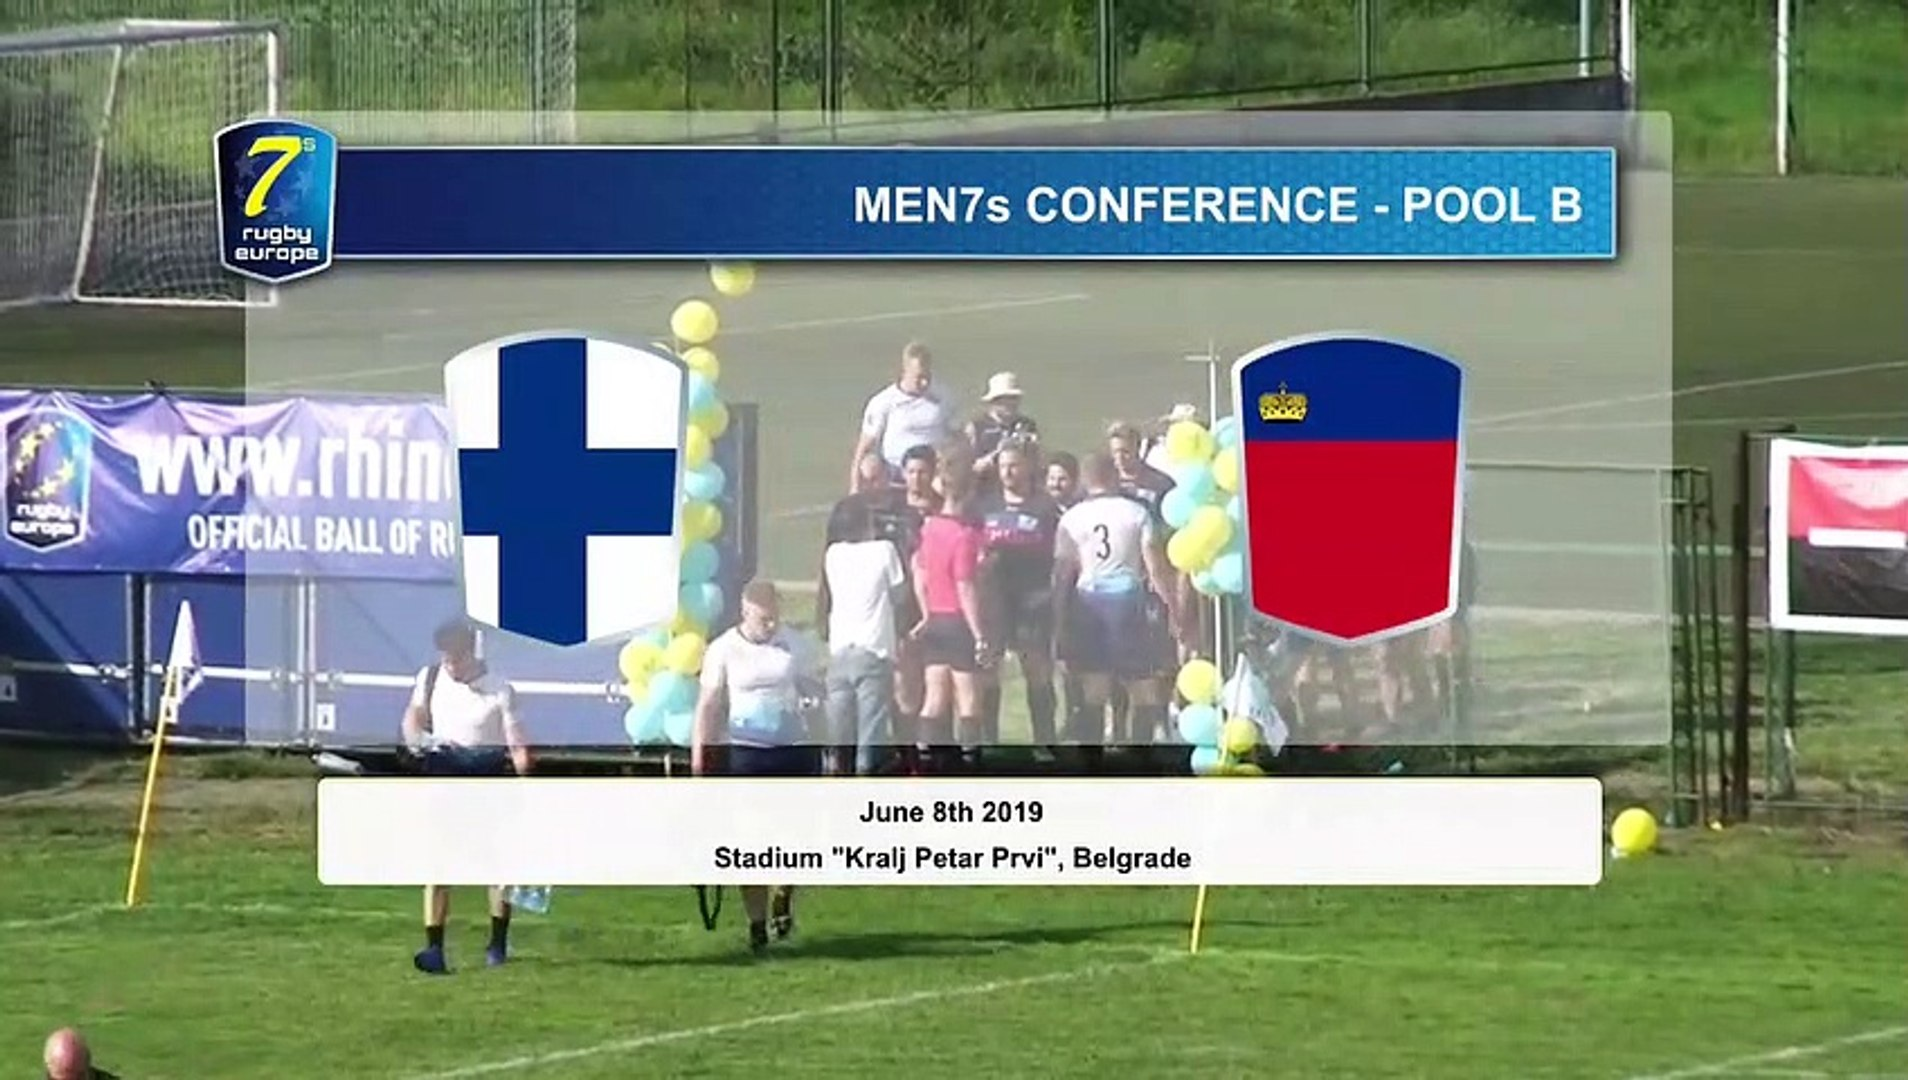 REPLAY GAMES 3 -  RUGBY EUROPE MEN 7s CONFERENCE 2019 - BELGRADE 2019